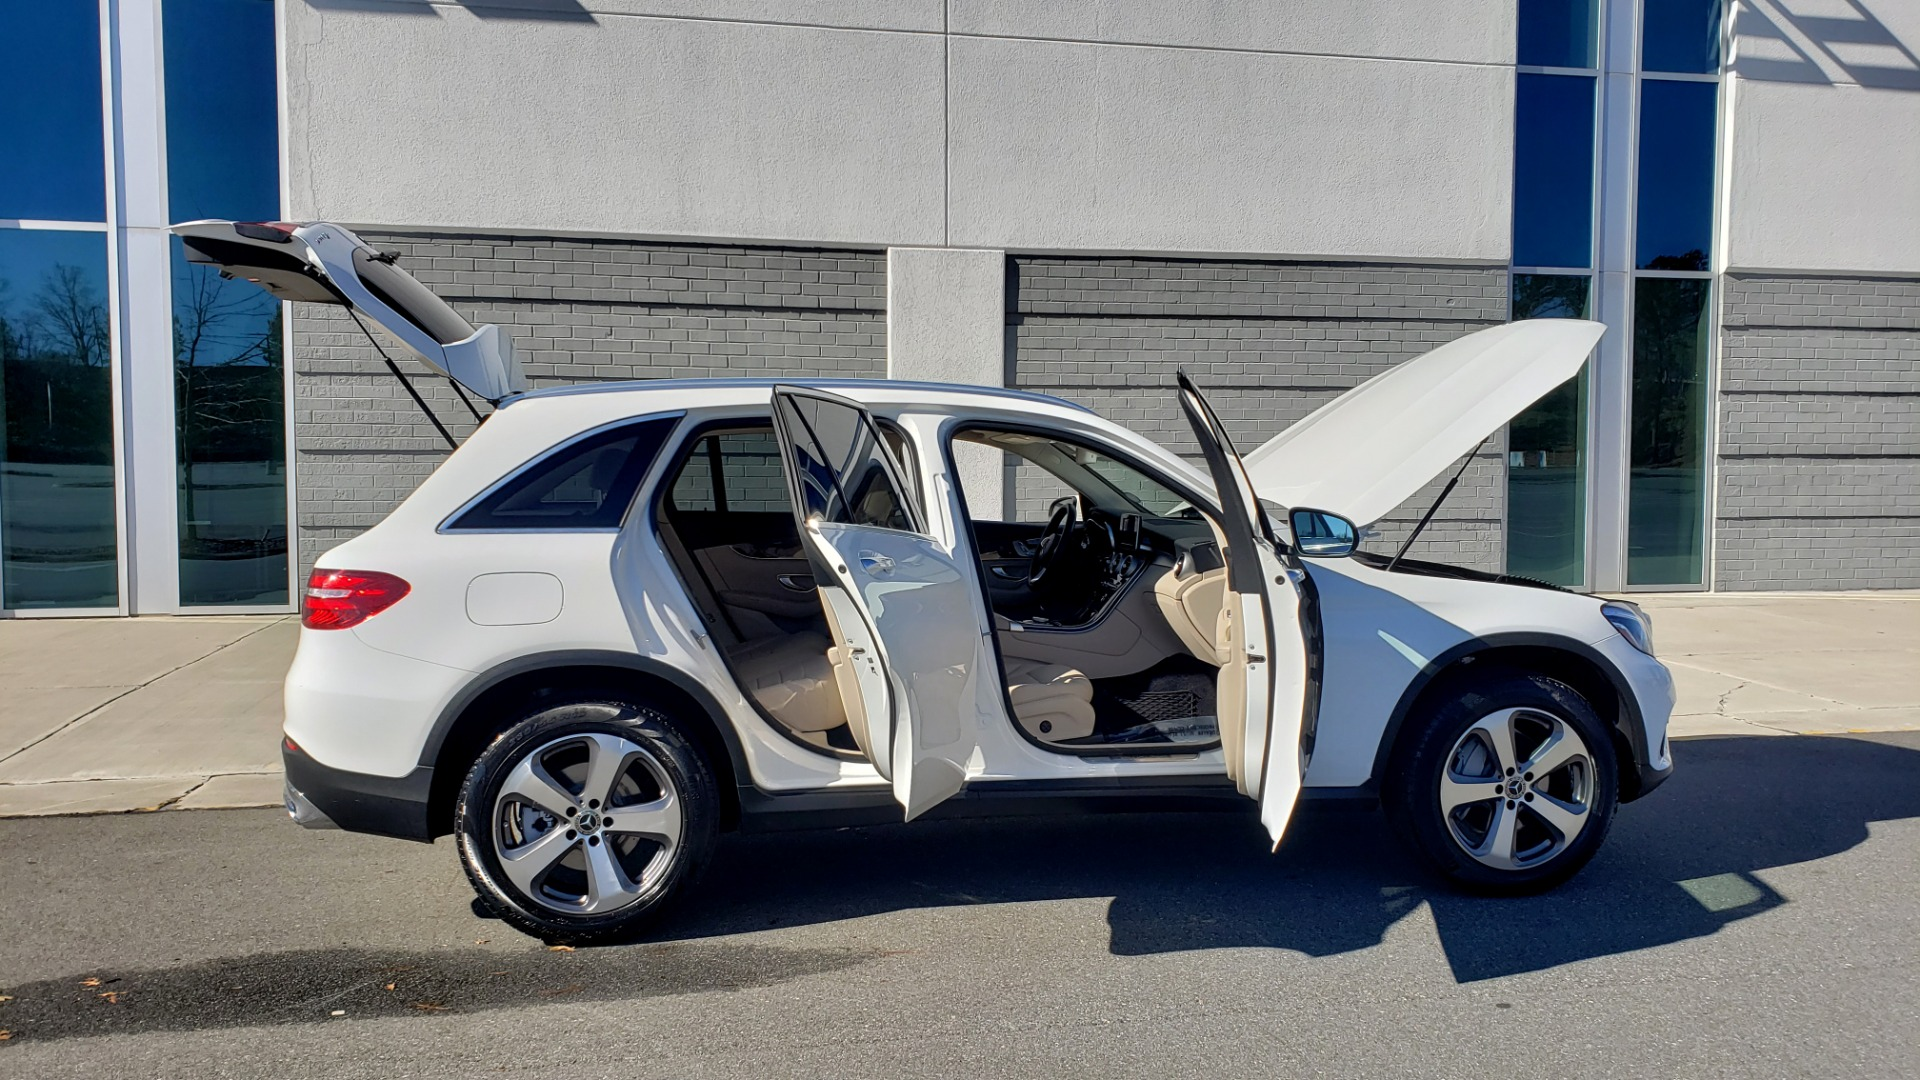 Used 2018 Mercedes-Benz GLC 300 4MATIC / PREM PKG / NAV / SUNROOF / REARVIEW for sale $36,995 at Formula Imports in Charlotte NC 28227 9